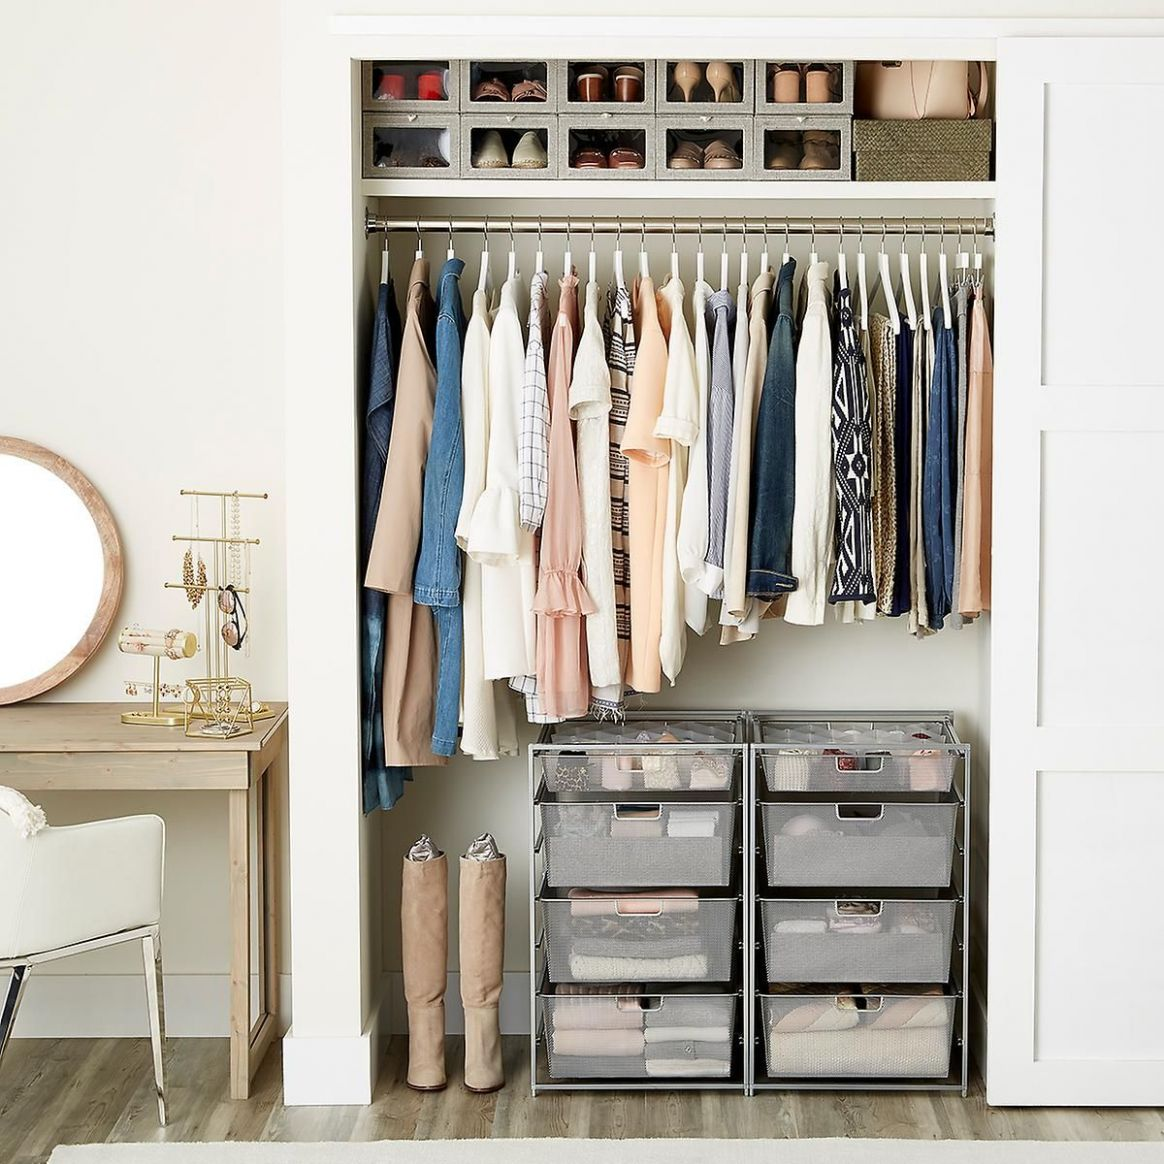 10 Small Apartment Closet Ideas that Save Space with Innovative Design - closet ideas for small apartments